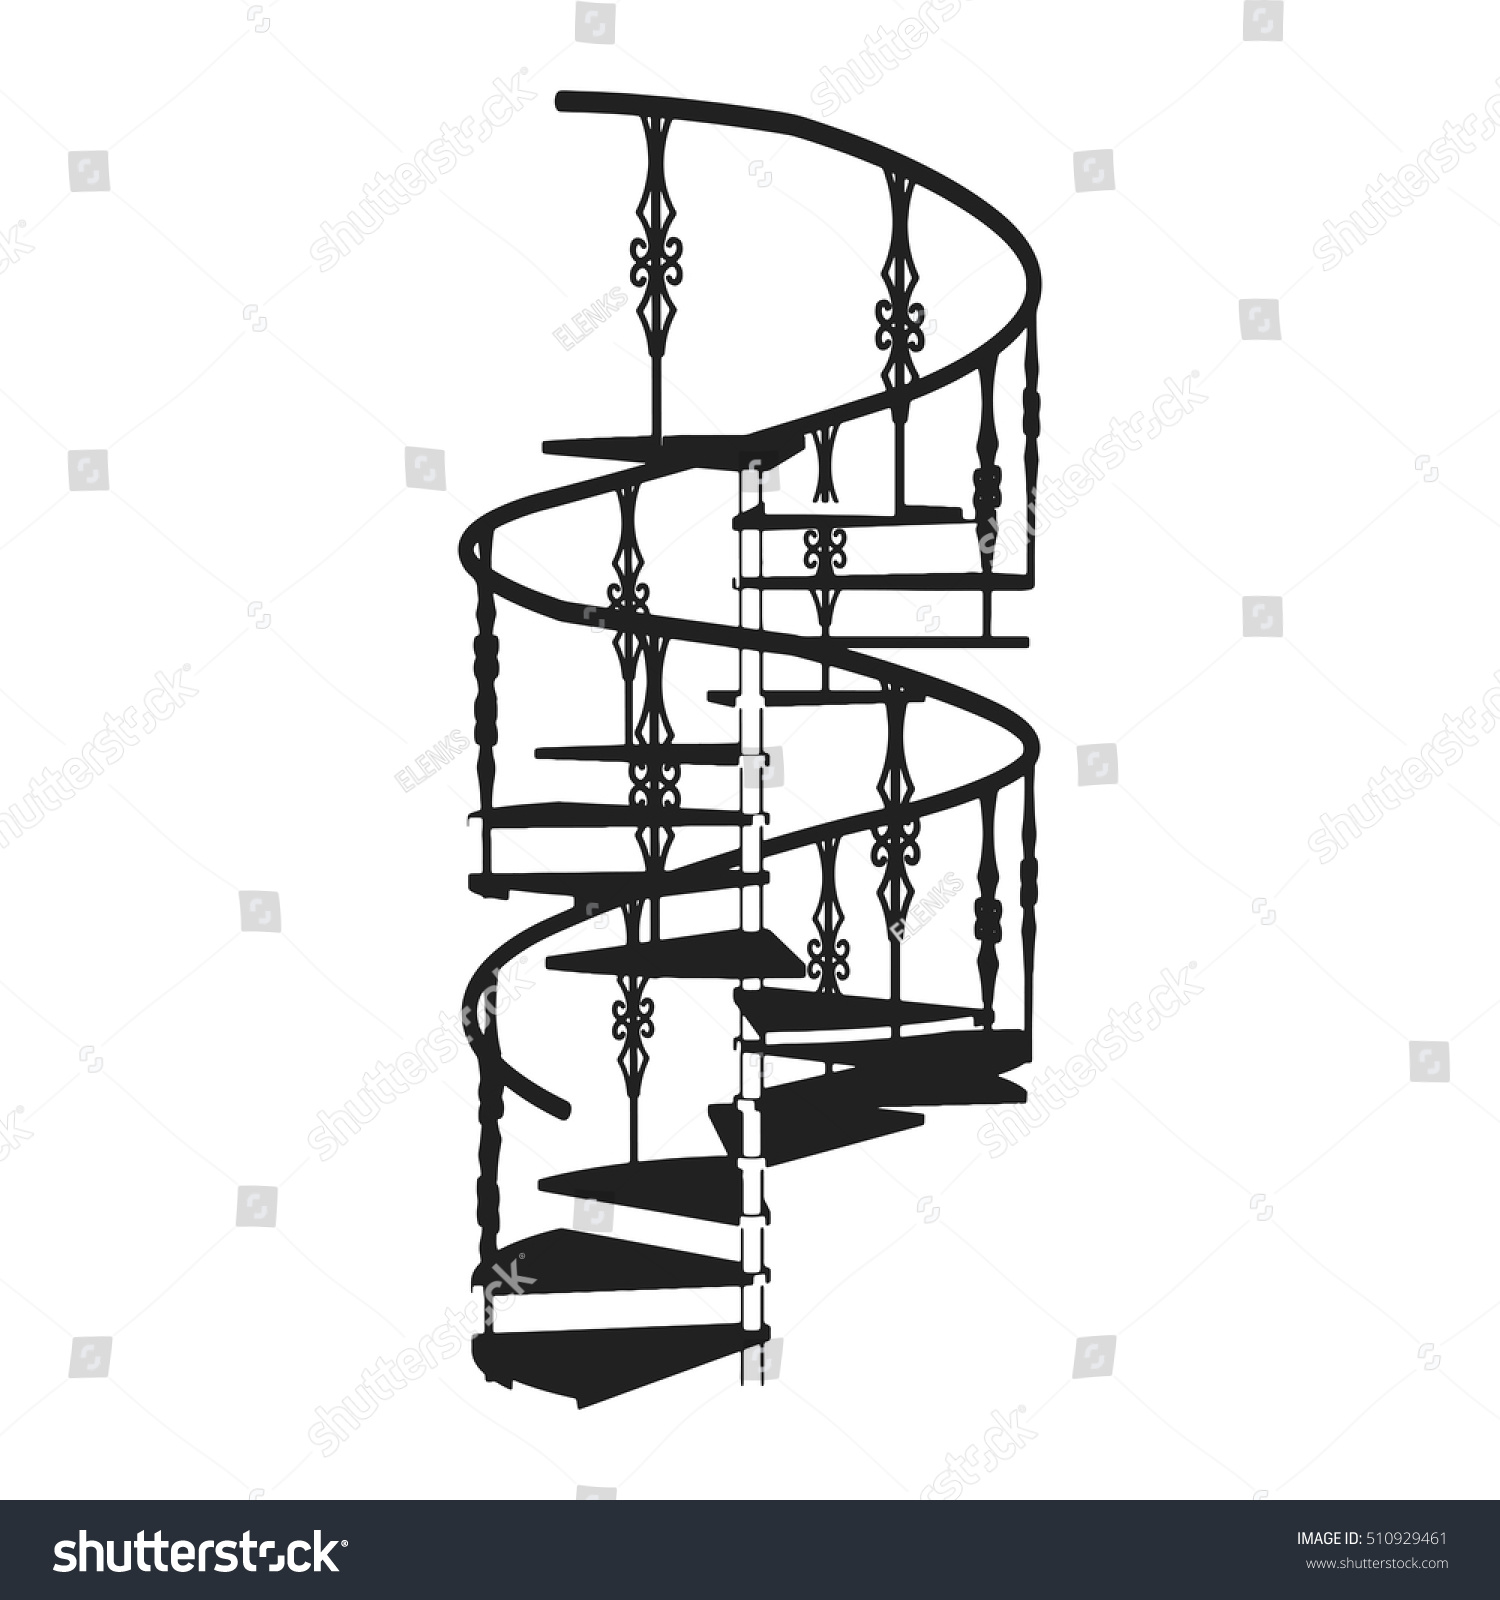 Spiral d staircase forged railing isolated stock vector